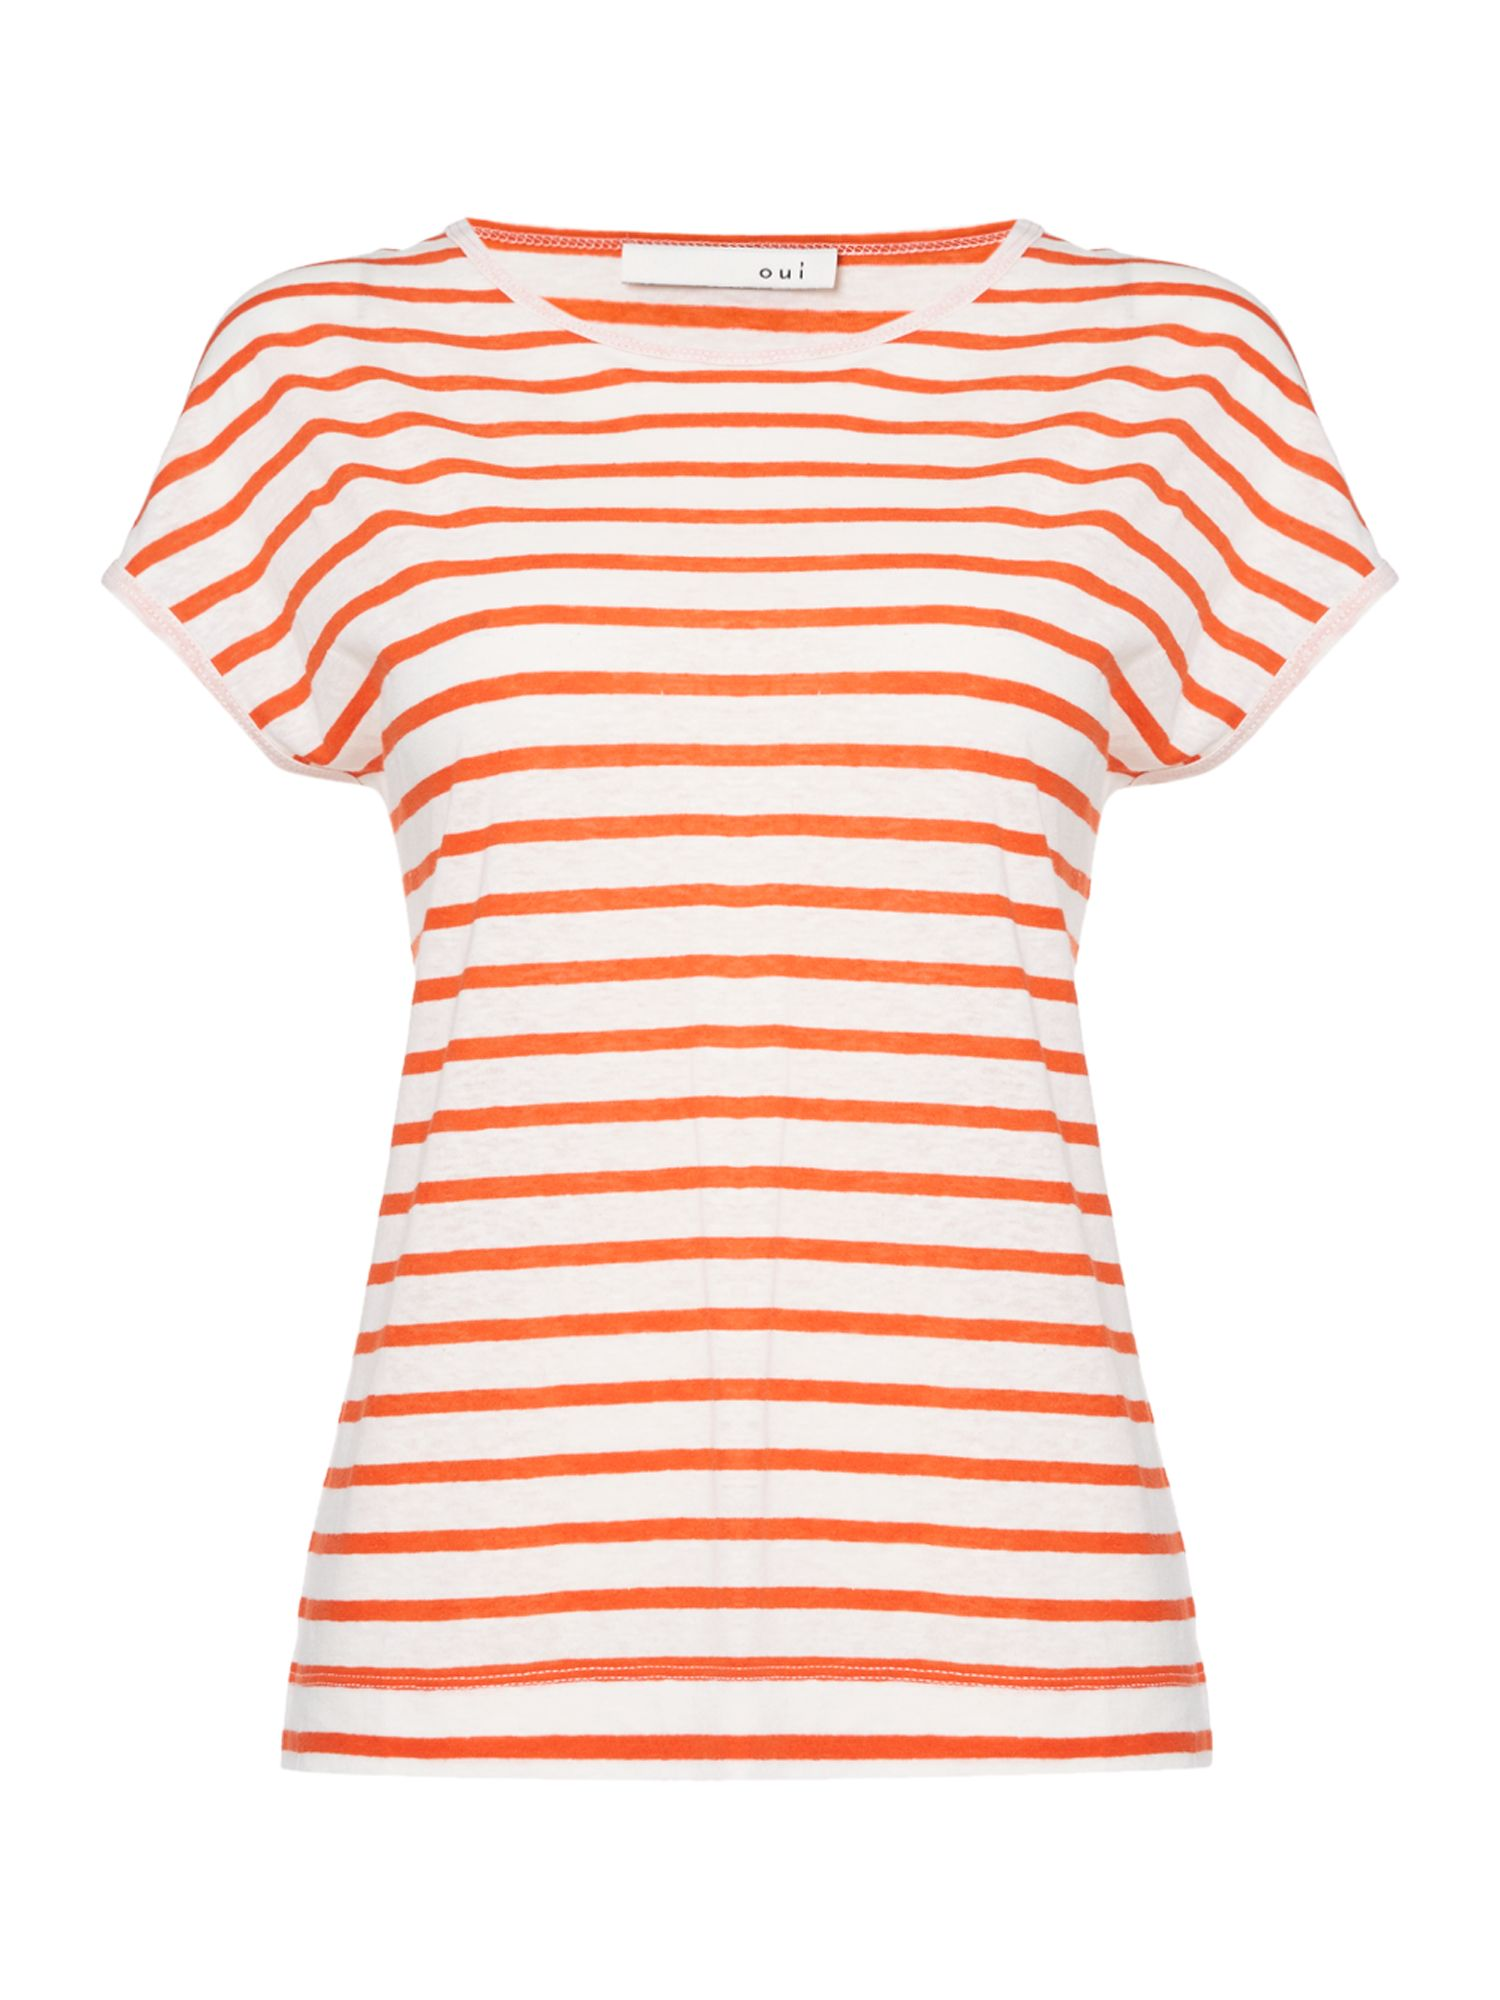 Oui Stripe t-shirt, White